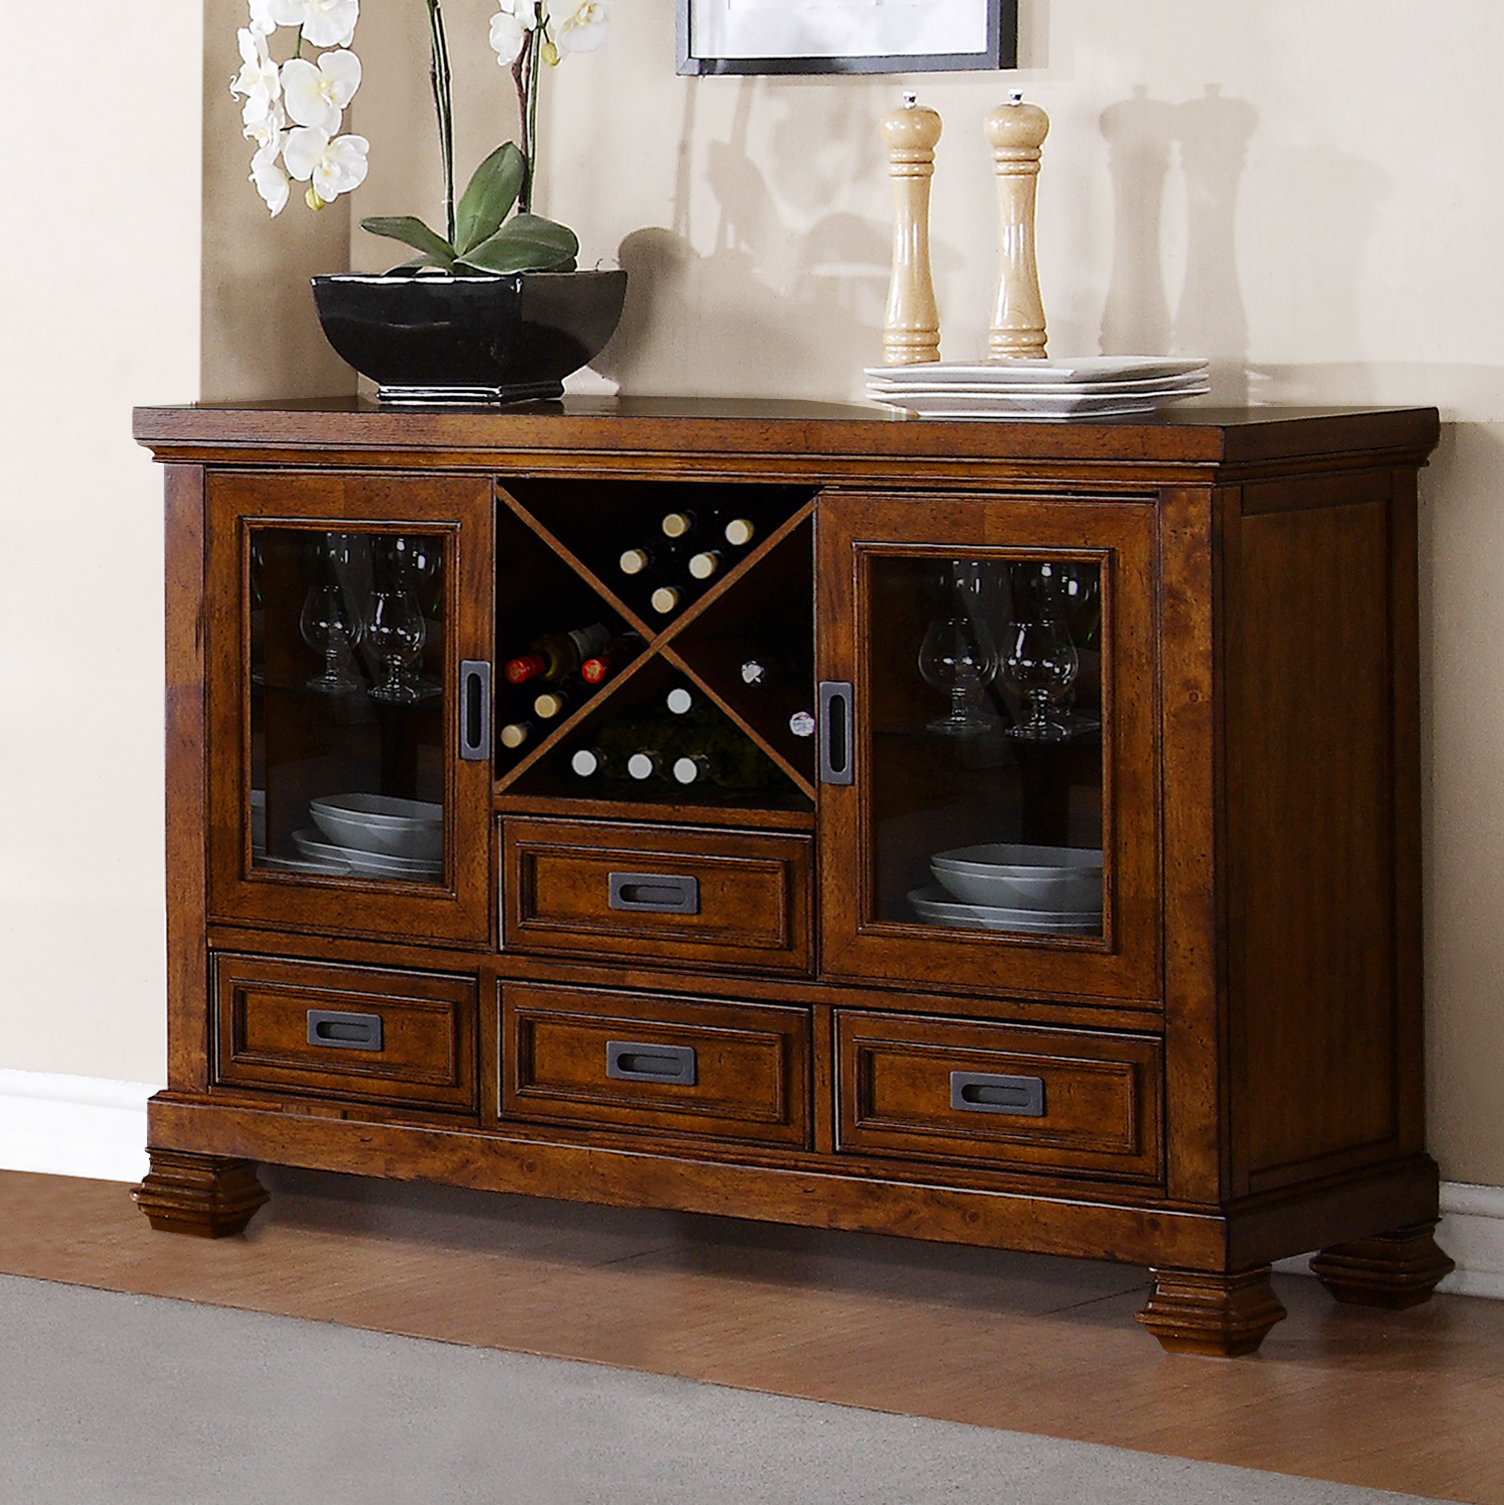 Sideboard With Favorite Sideboards By Wildon Home (Gallery 2 of 20)